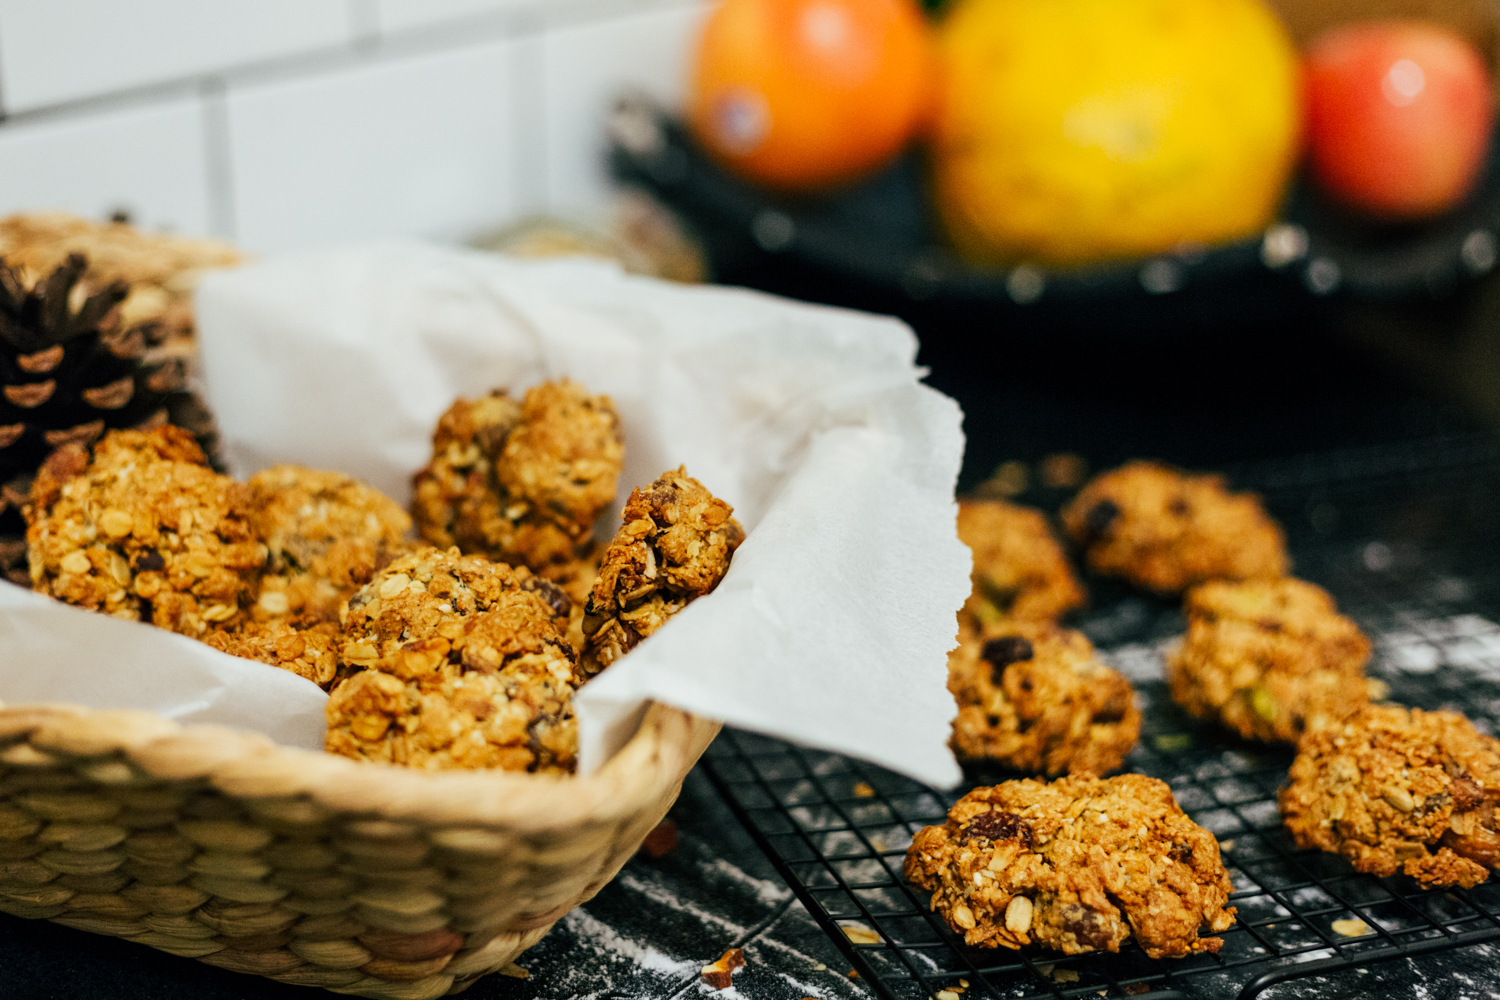 I love the crunchiness from coconut and fig seeds. Whole meal flour made them more nutritious!